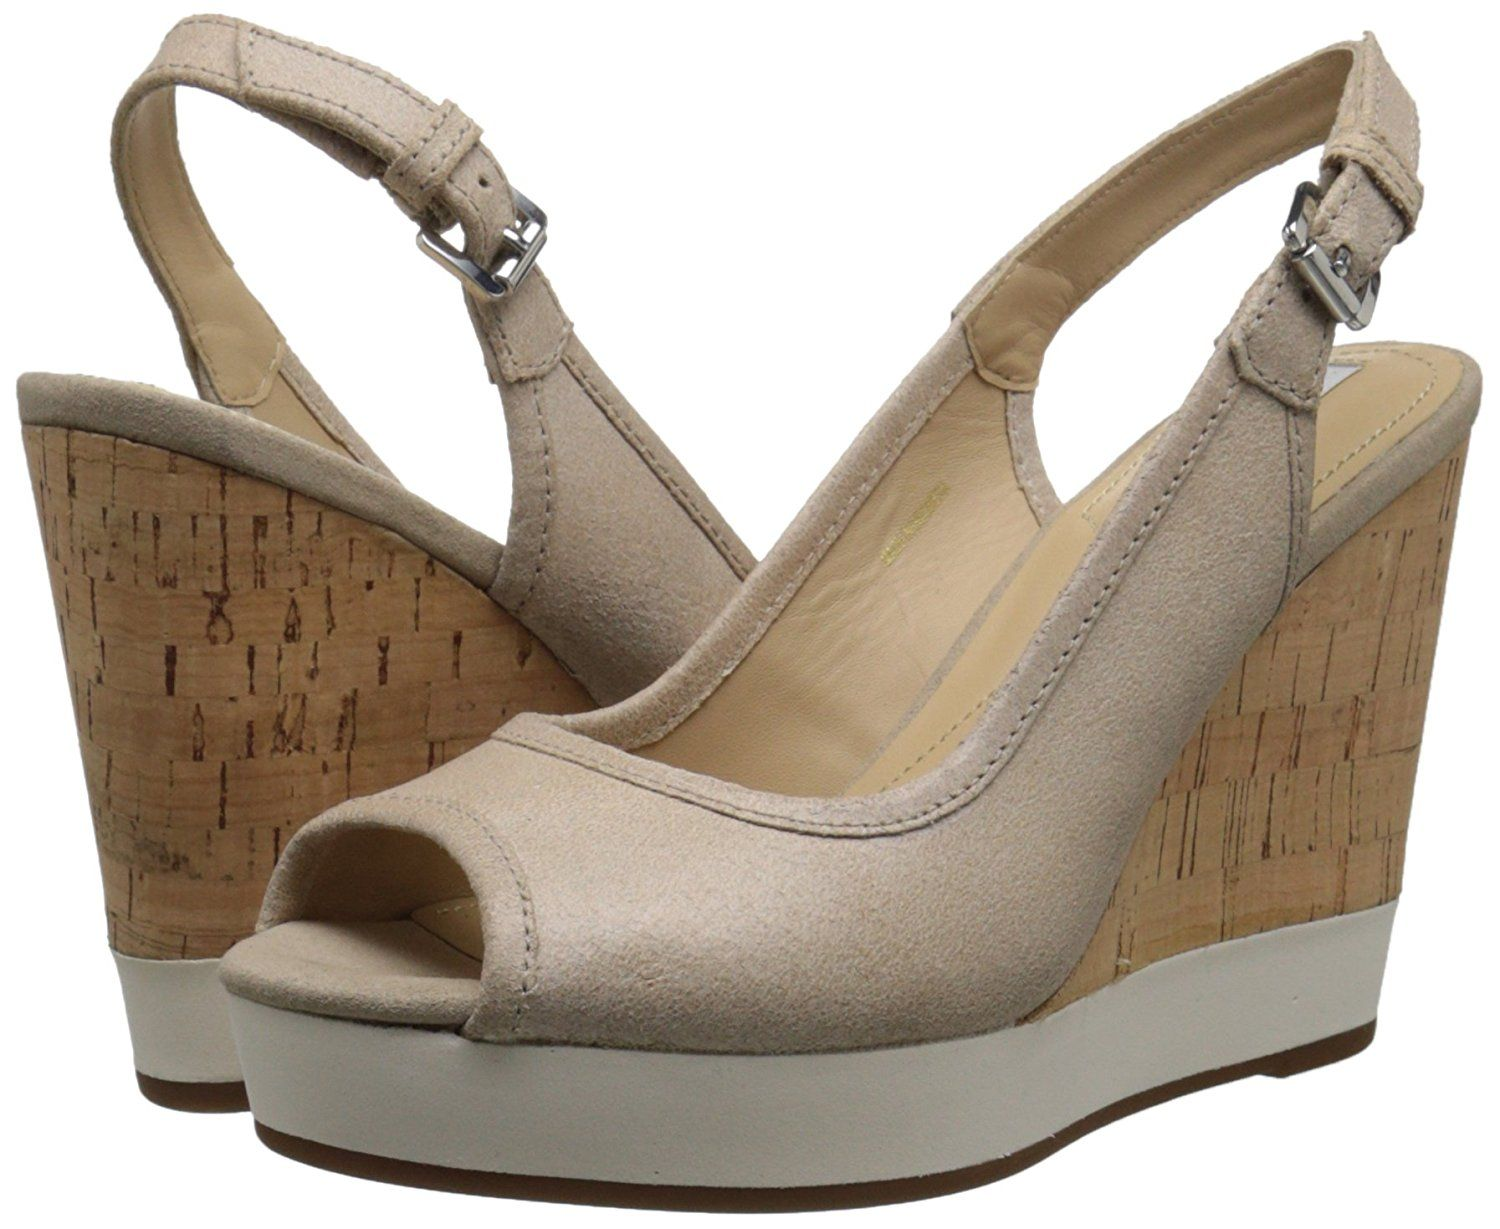 2a8b4da034e1f Geox Women's D Janira Wedge Sandal ** Want additional info? Click on the  image. (This is an affiliate link) #sandalsoftheday